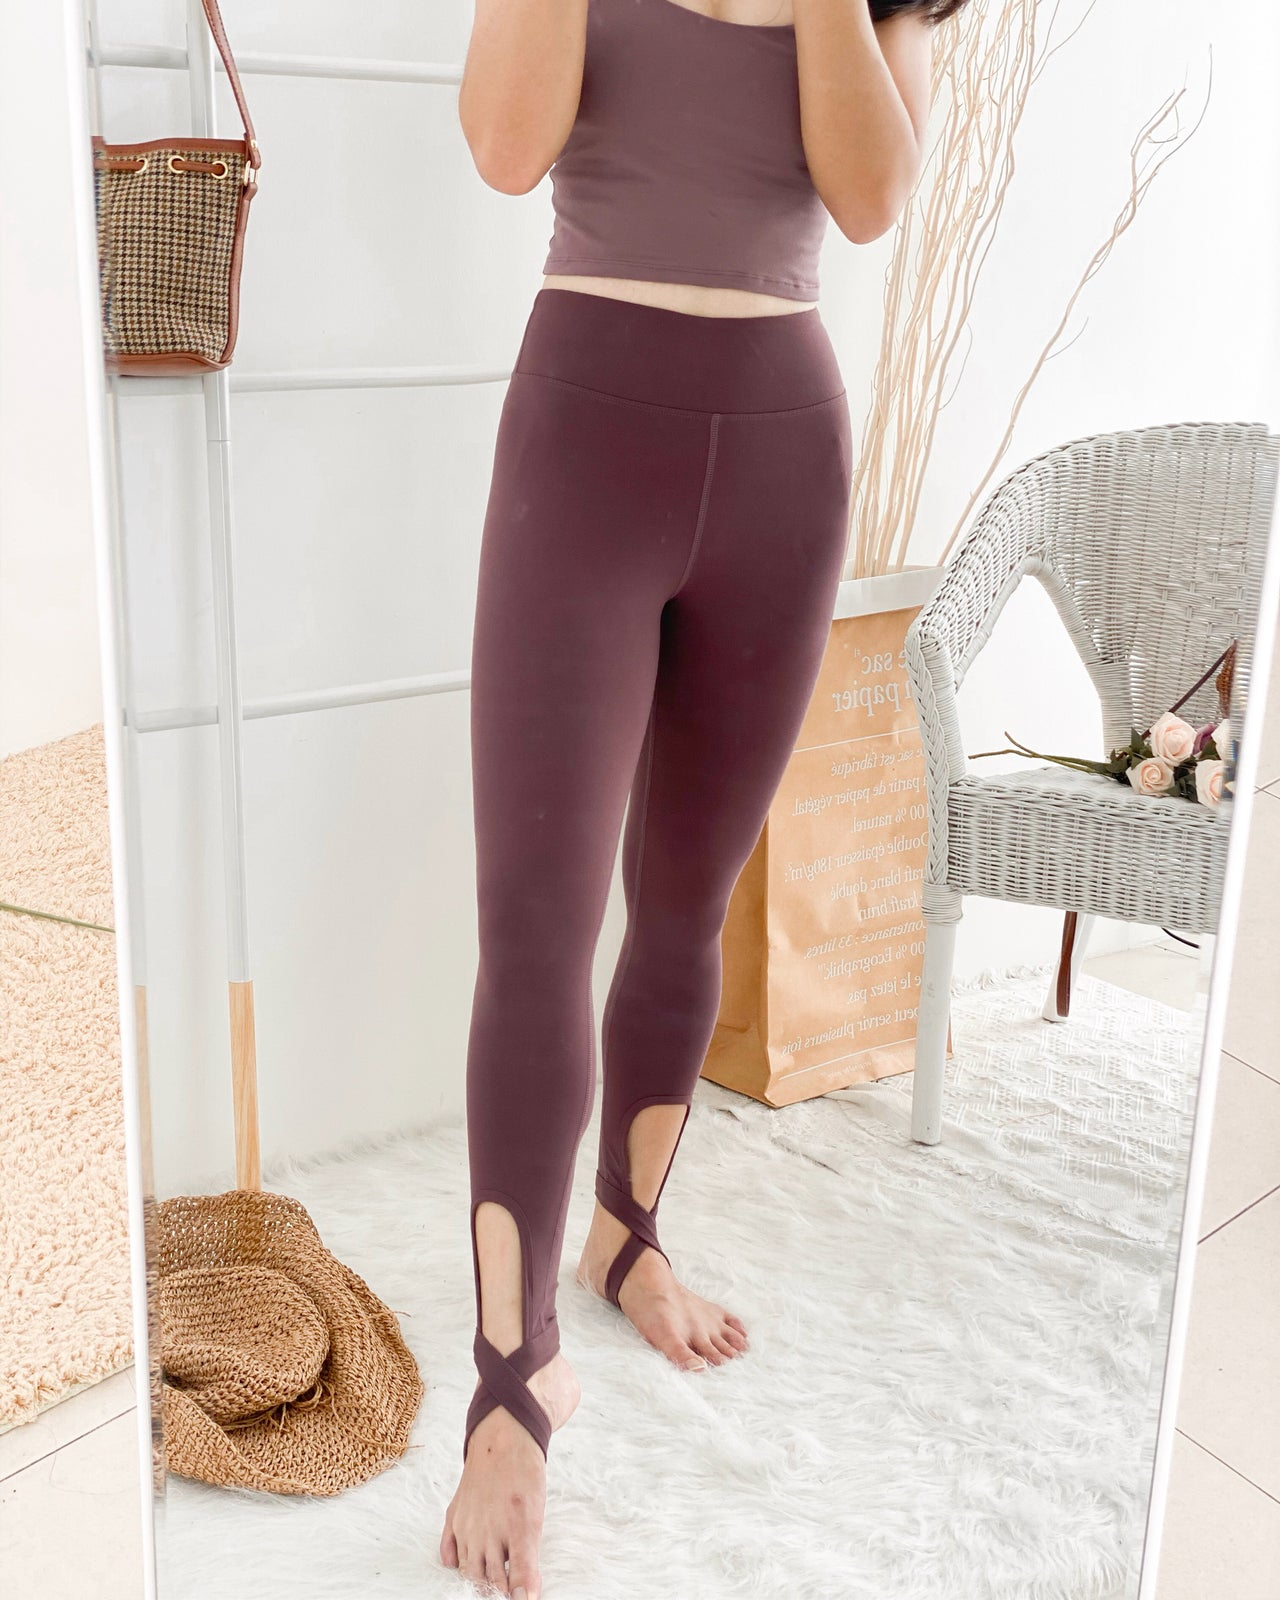 Yoga Ballet Leggings - LovelyMadness Clothing Online Fashion Malaysia